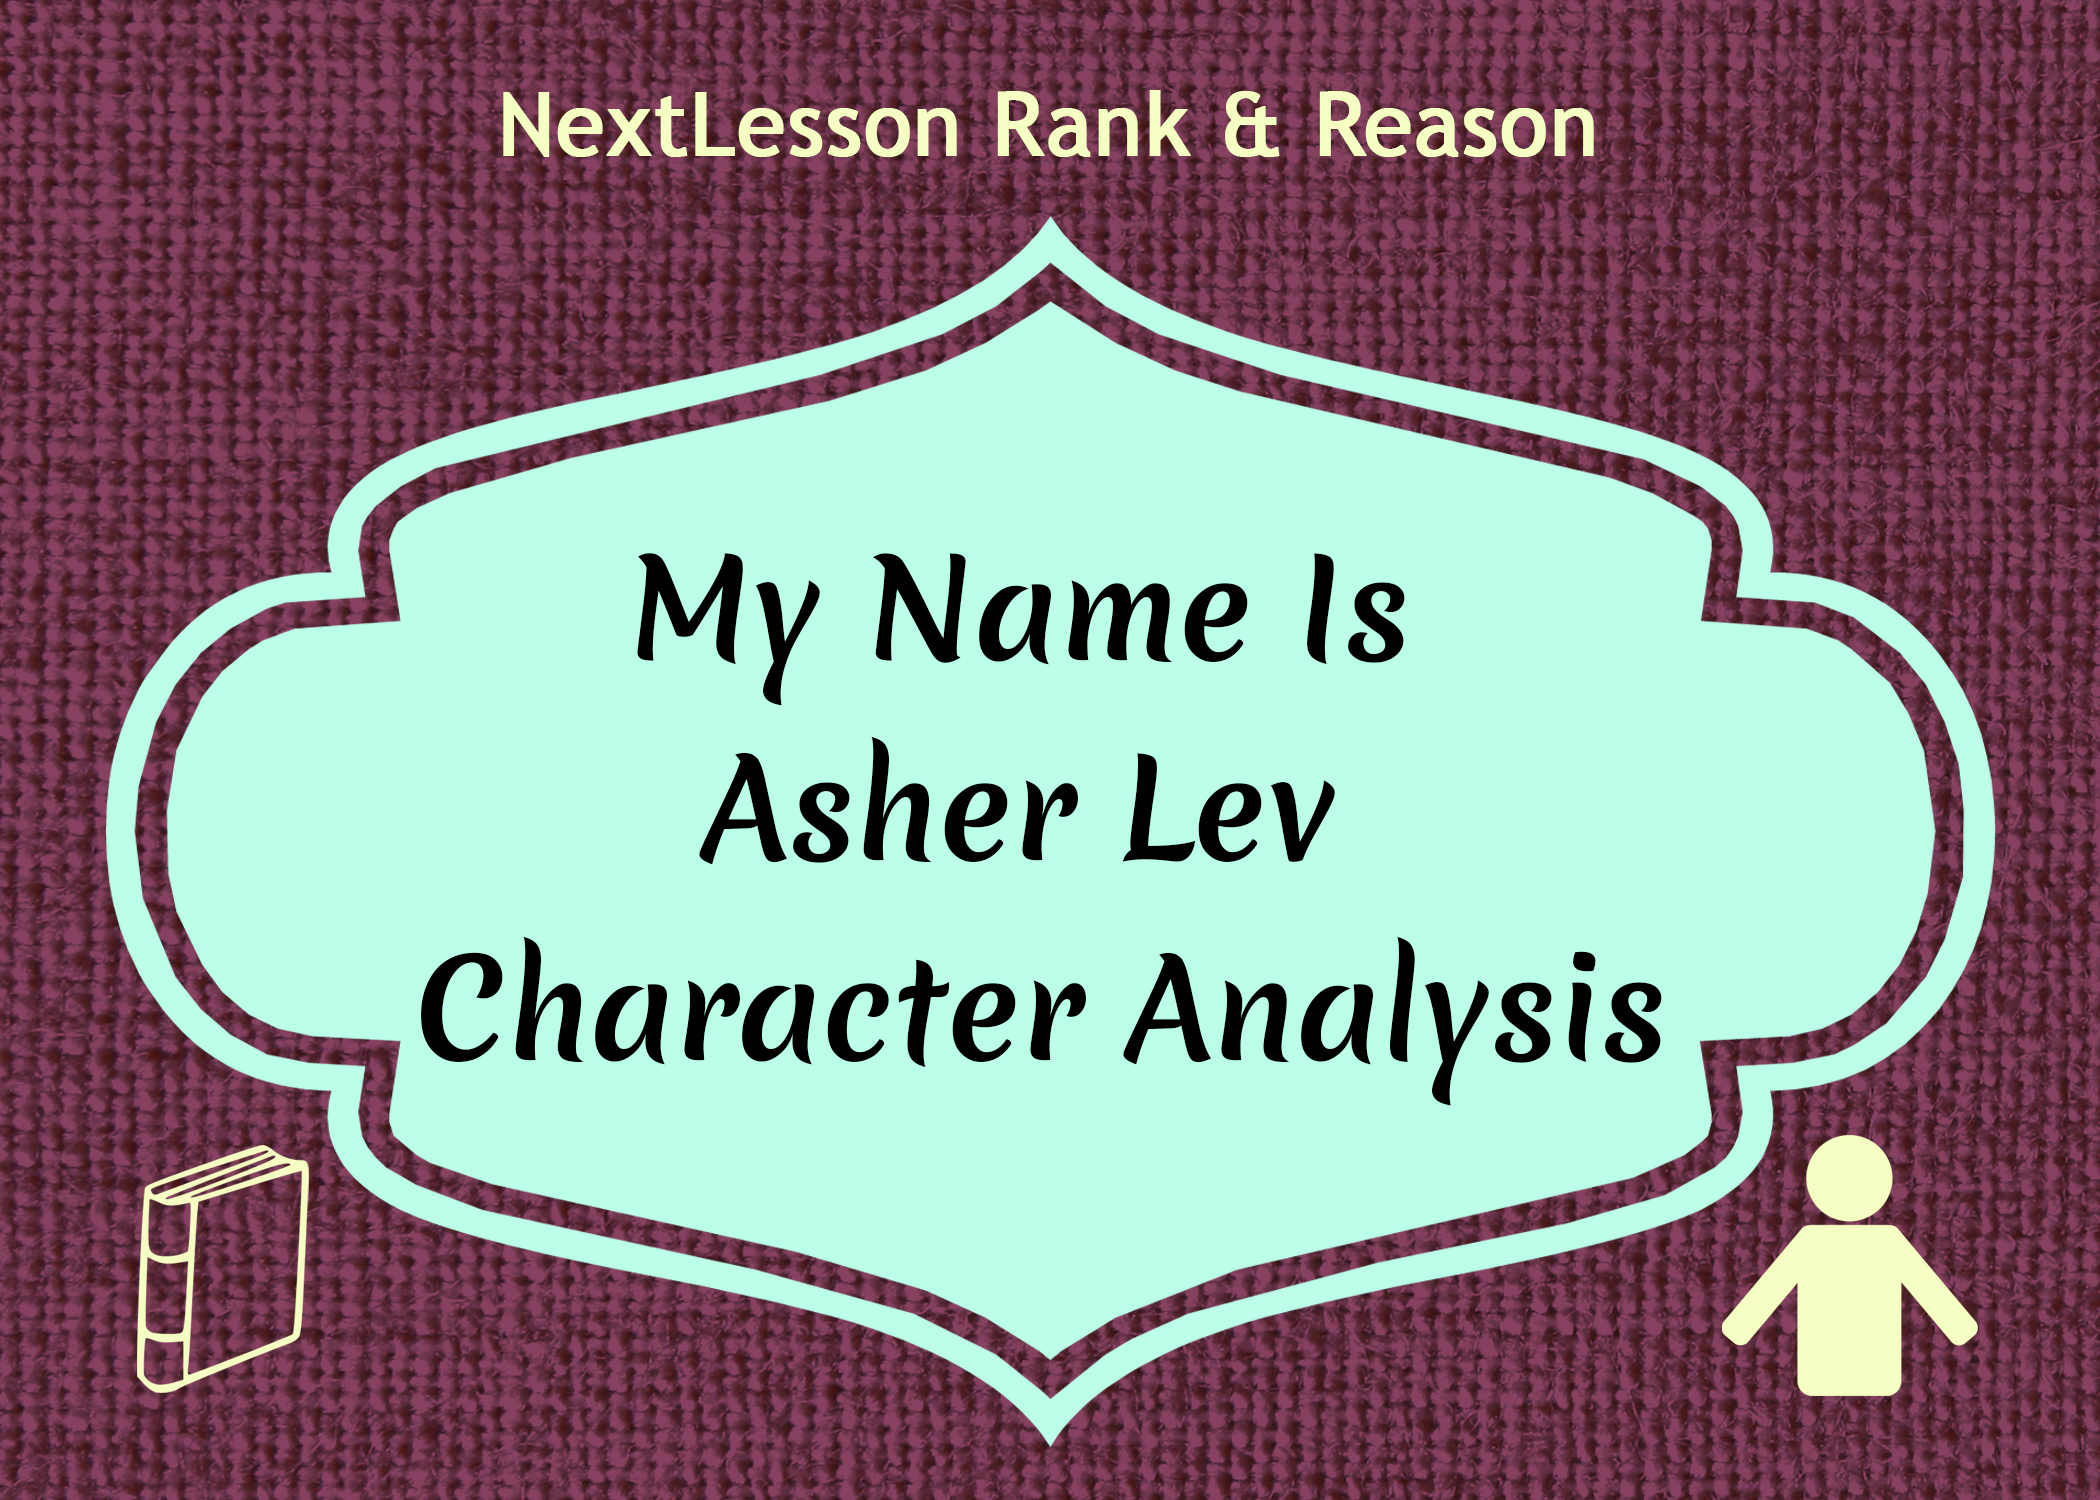 my name asher lev essay A great power 1196 words 571 words introduction for a thesis paper - classified information, definition, national security state in each of my name is asher lev essays.